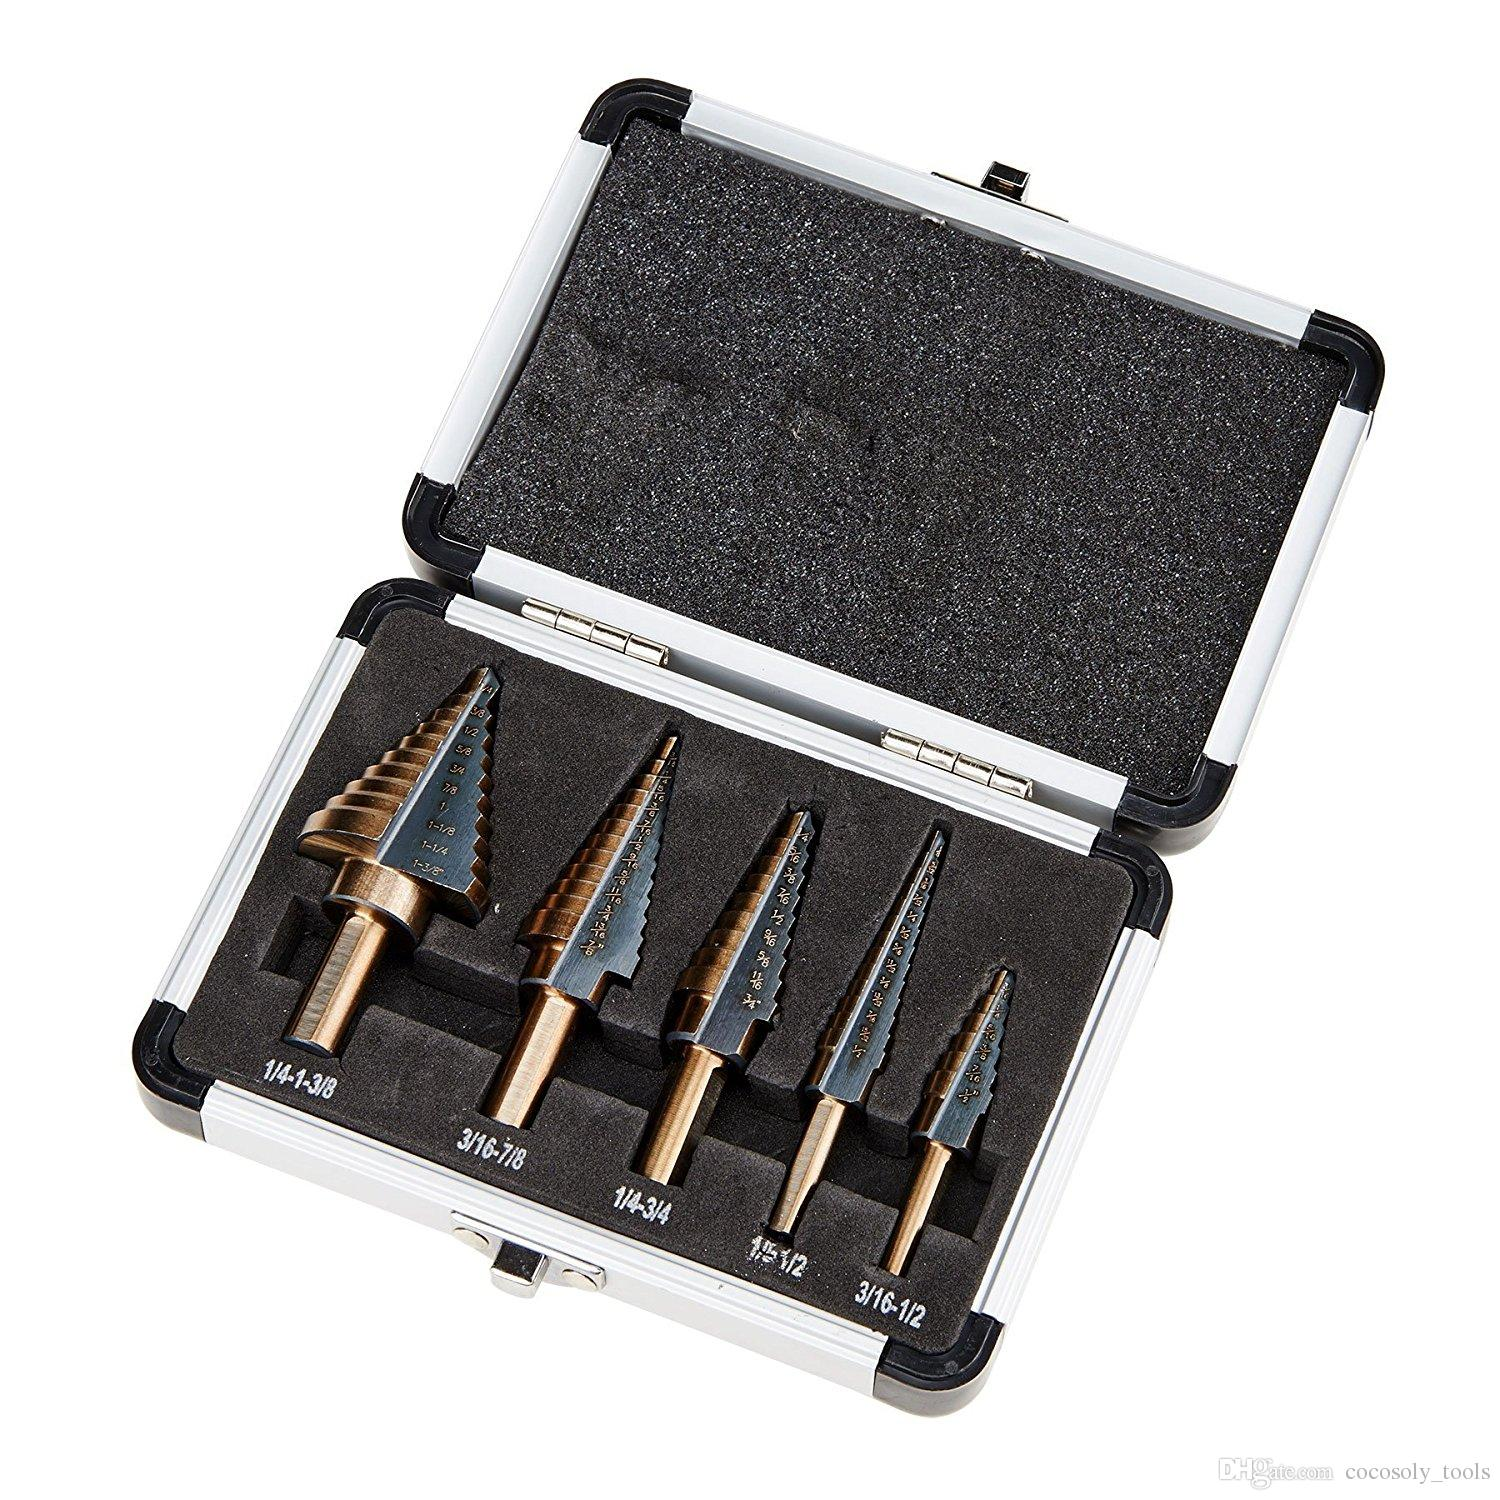 Hss Cobalt Multiple Hole 50 Sizes Step Drill Bit Set with Aluminum Case